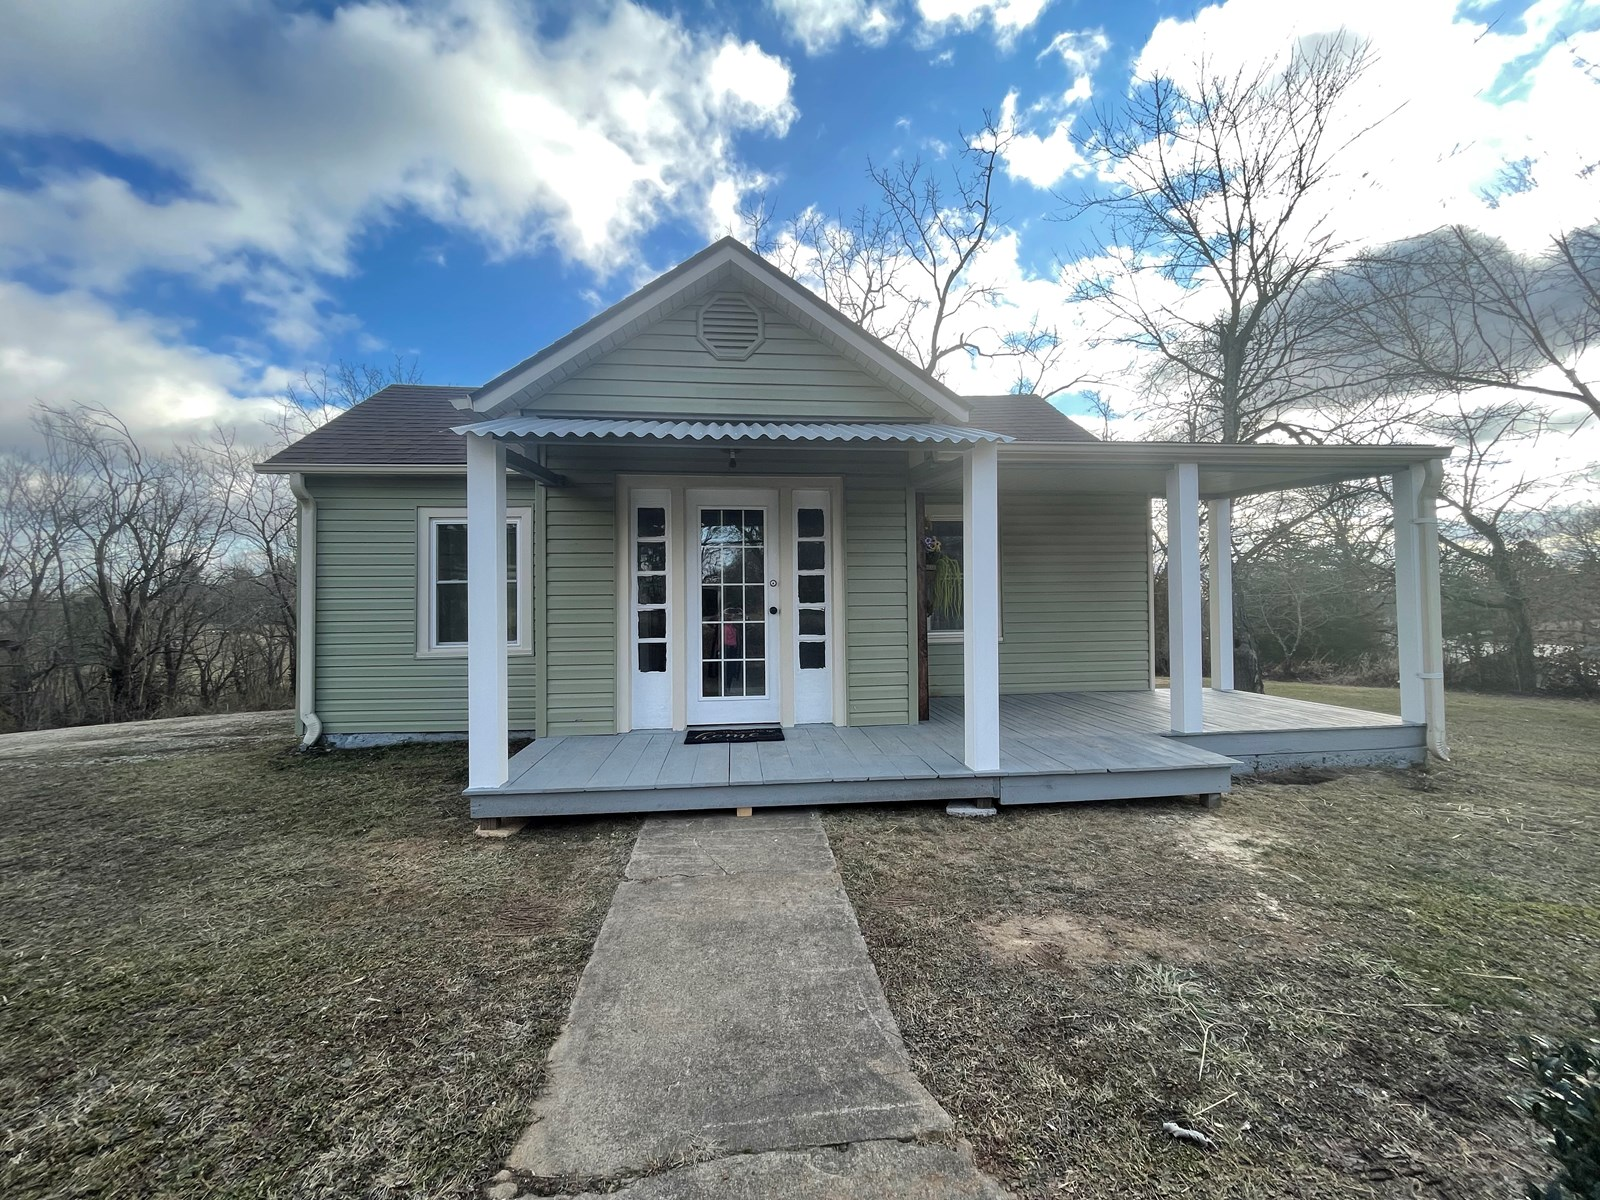 Home for Sale in West Plains, MO - Totally Updated